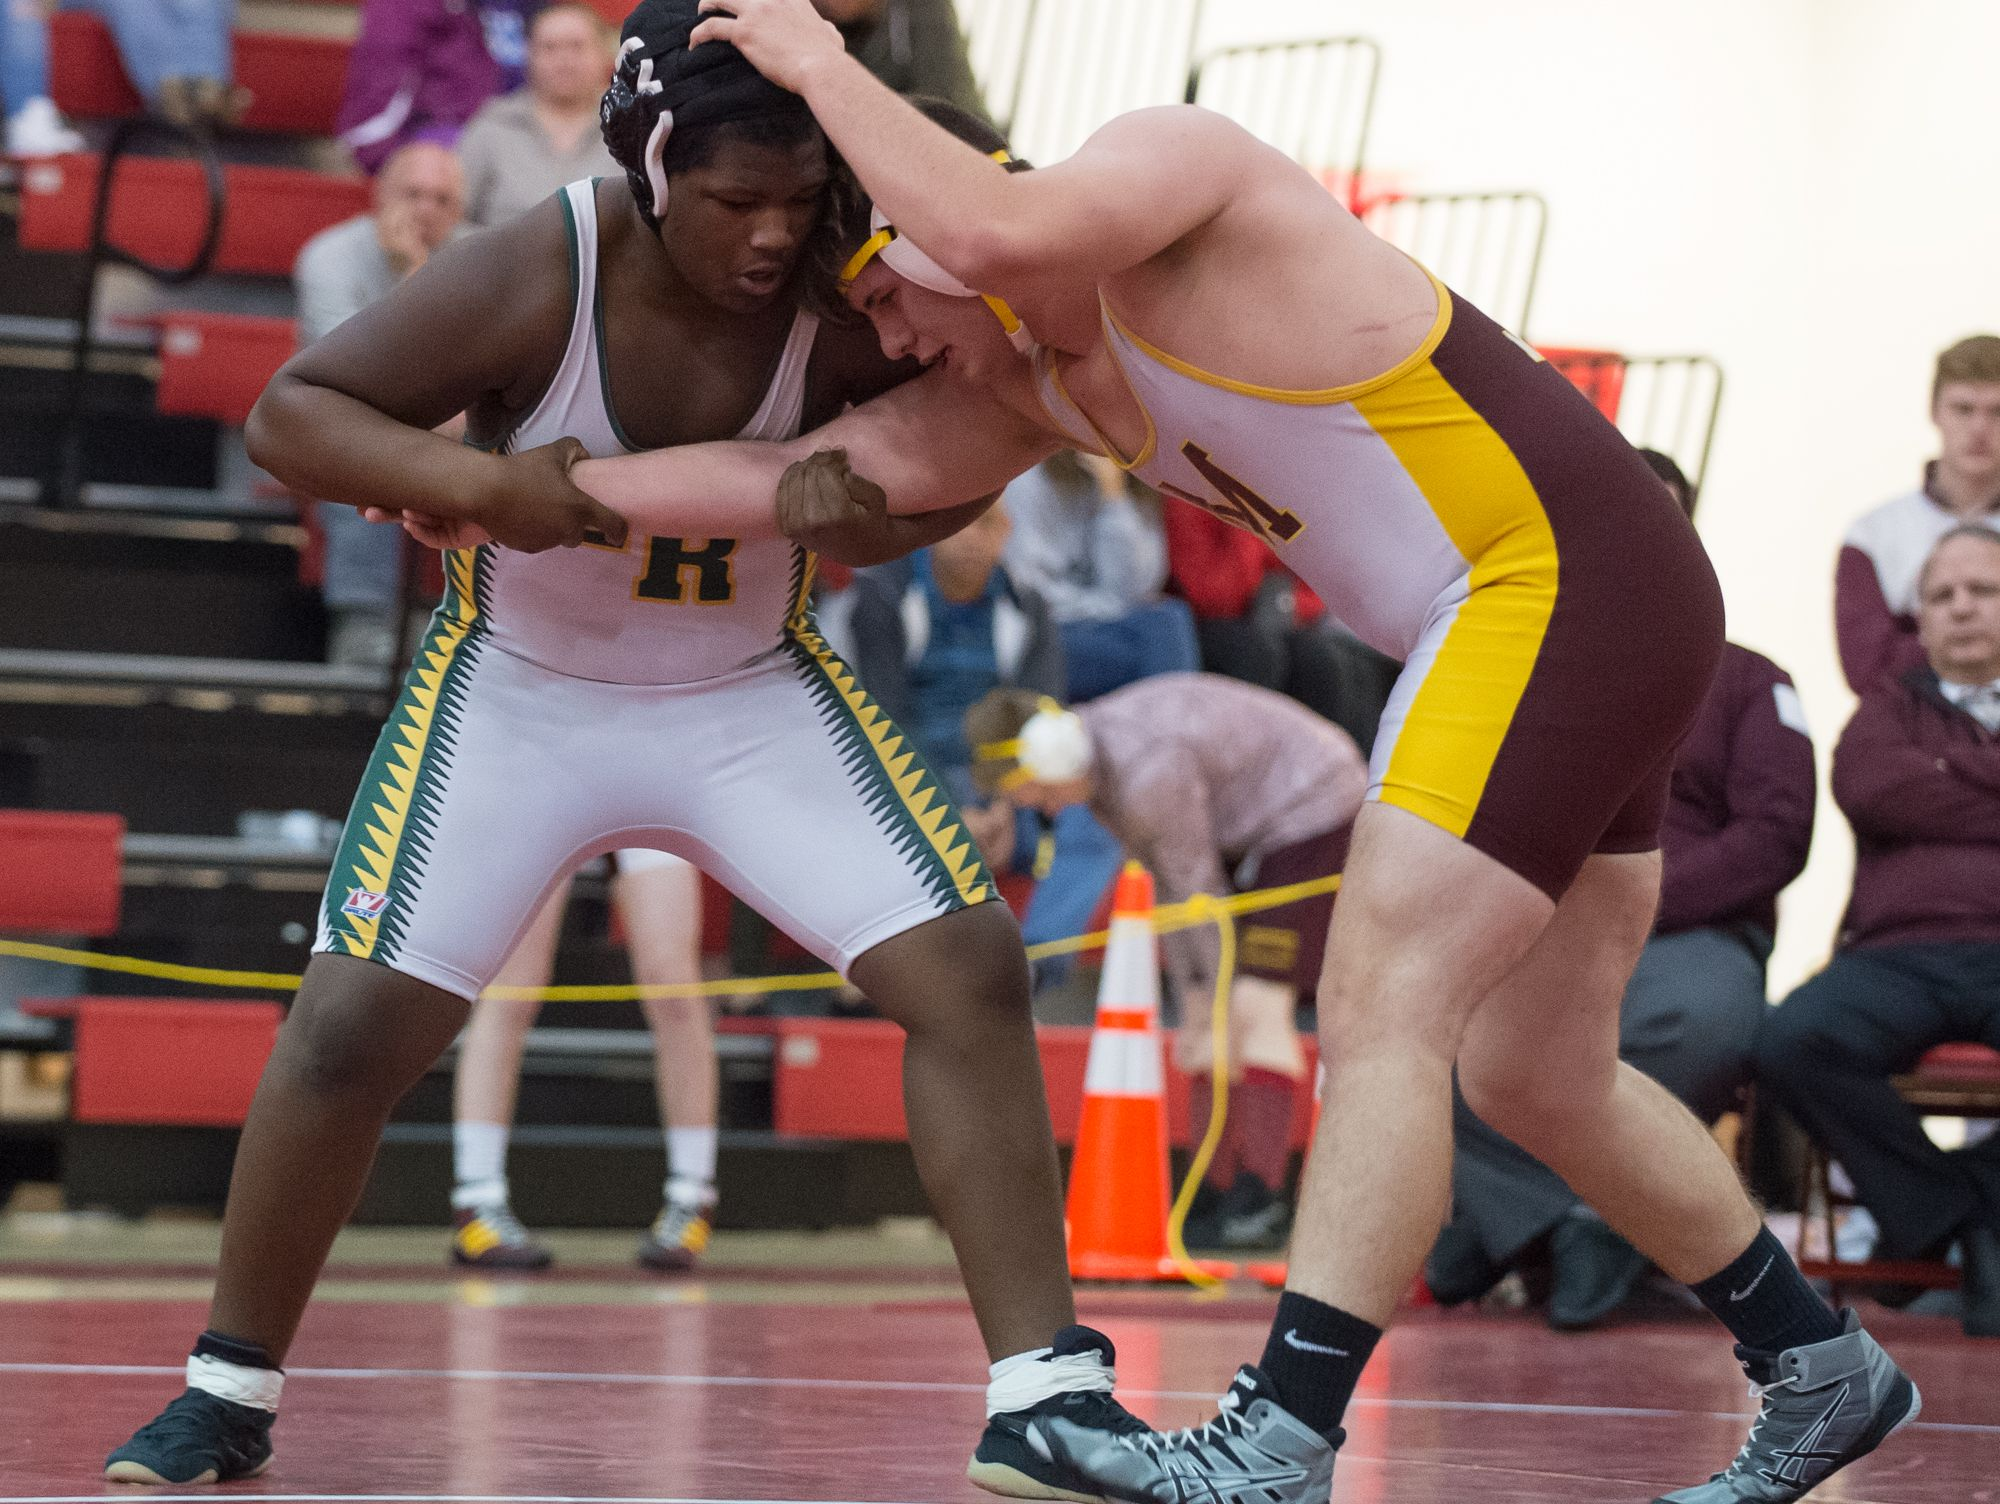 Indian River's Ramond Turner, left and Milford's Bryon Wynes wrestle in the 285 pound match at DIAA Dual Meet Wrestling State Championship at Smyrna High School.